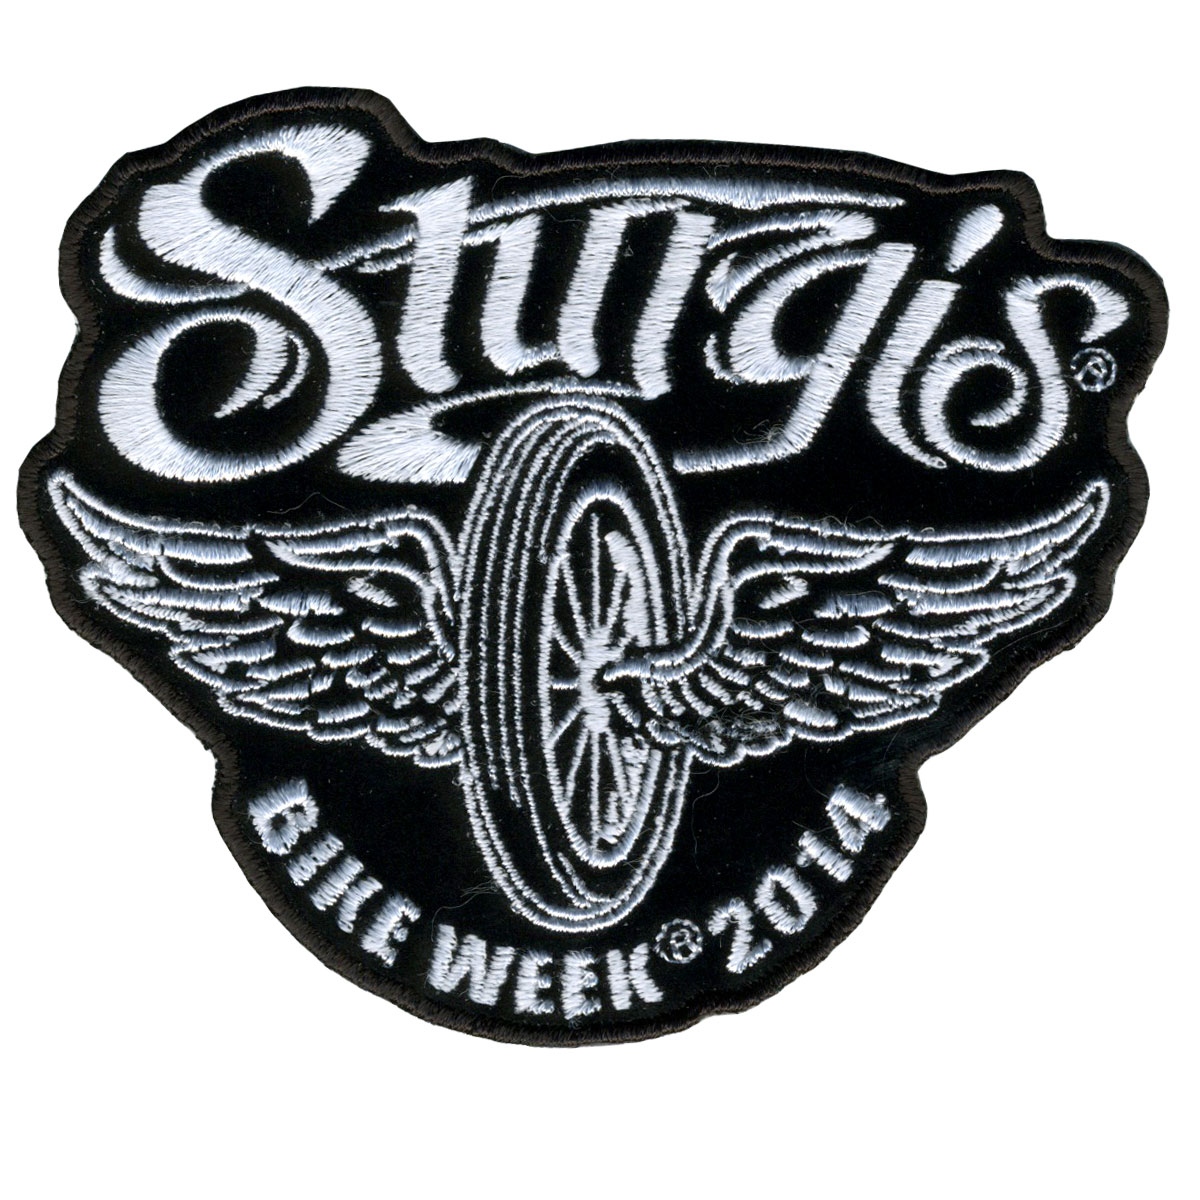 Sturgis Motorcycle Rally Flying Wheel Patch 10cm/10cm